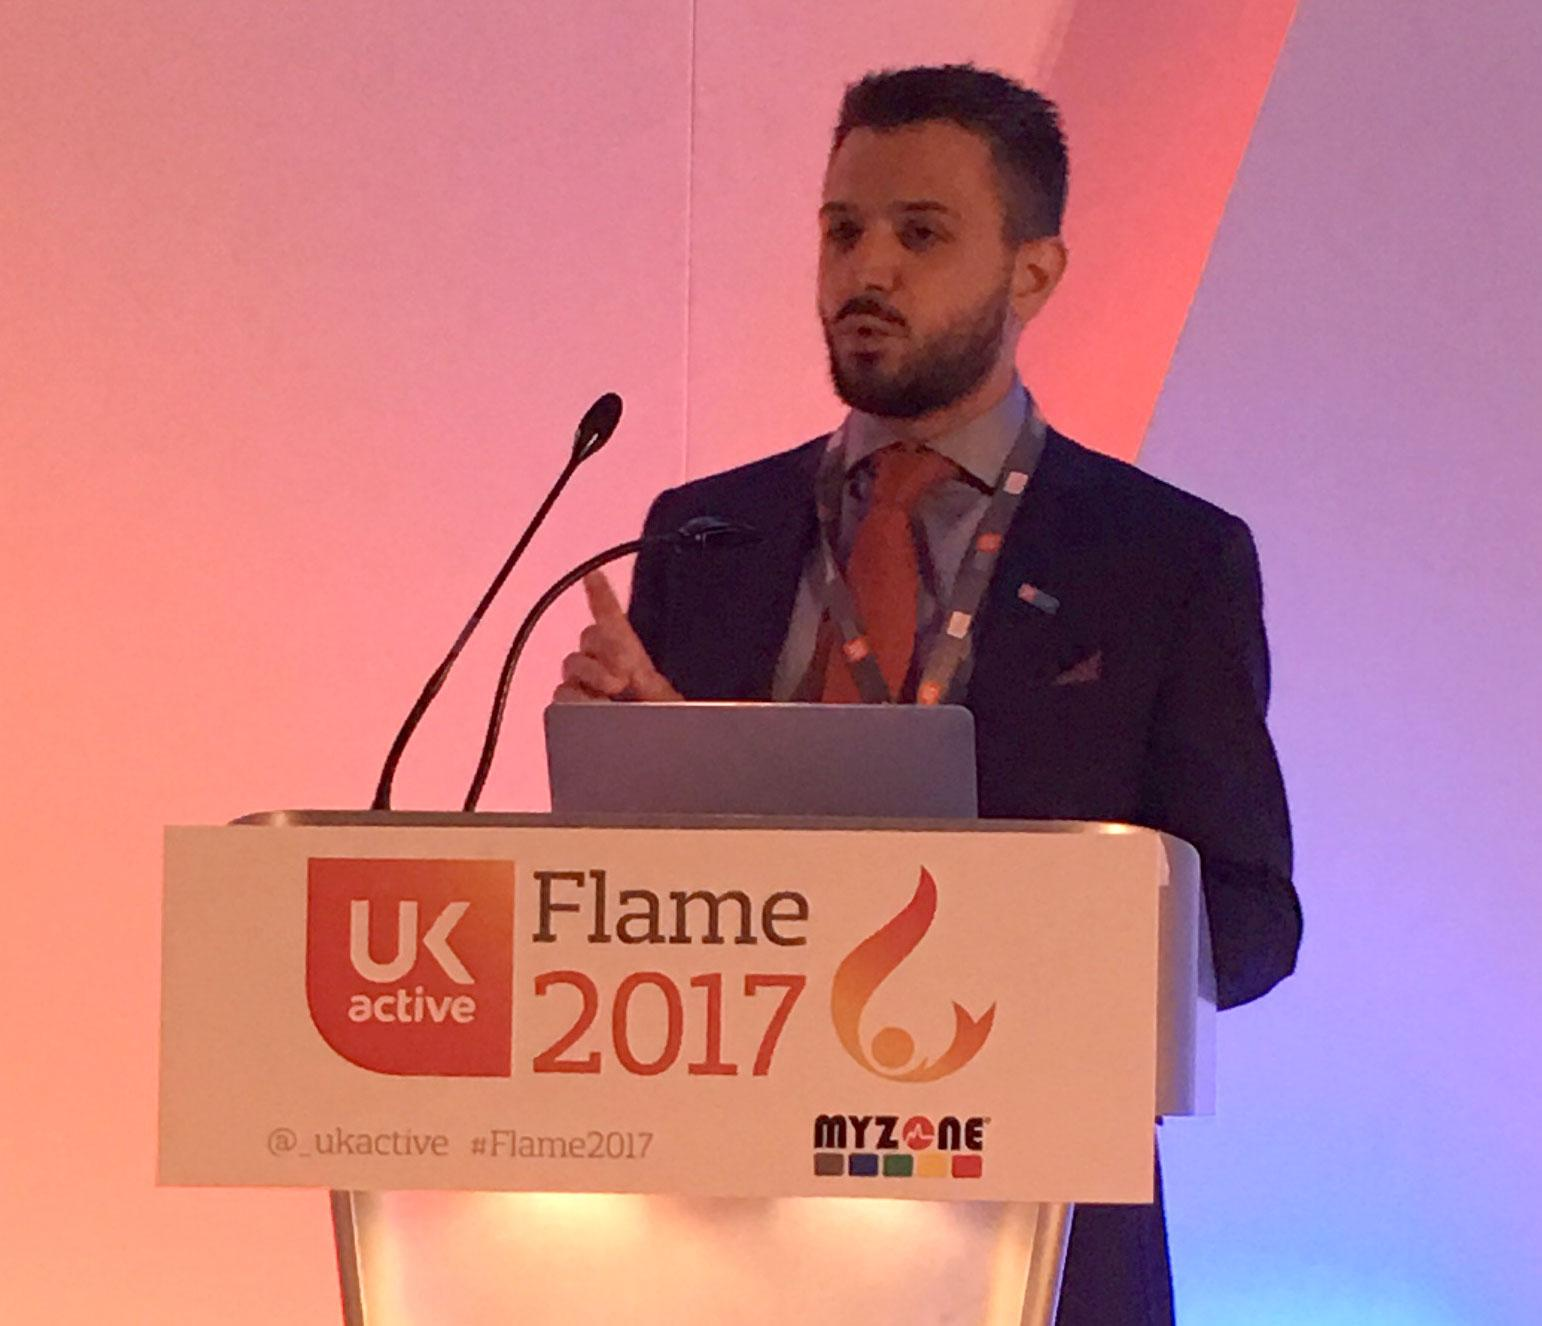 ukactive chief executive Steven Ward opens the 2017 Flame Conference